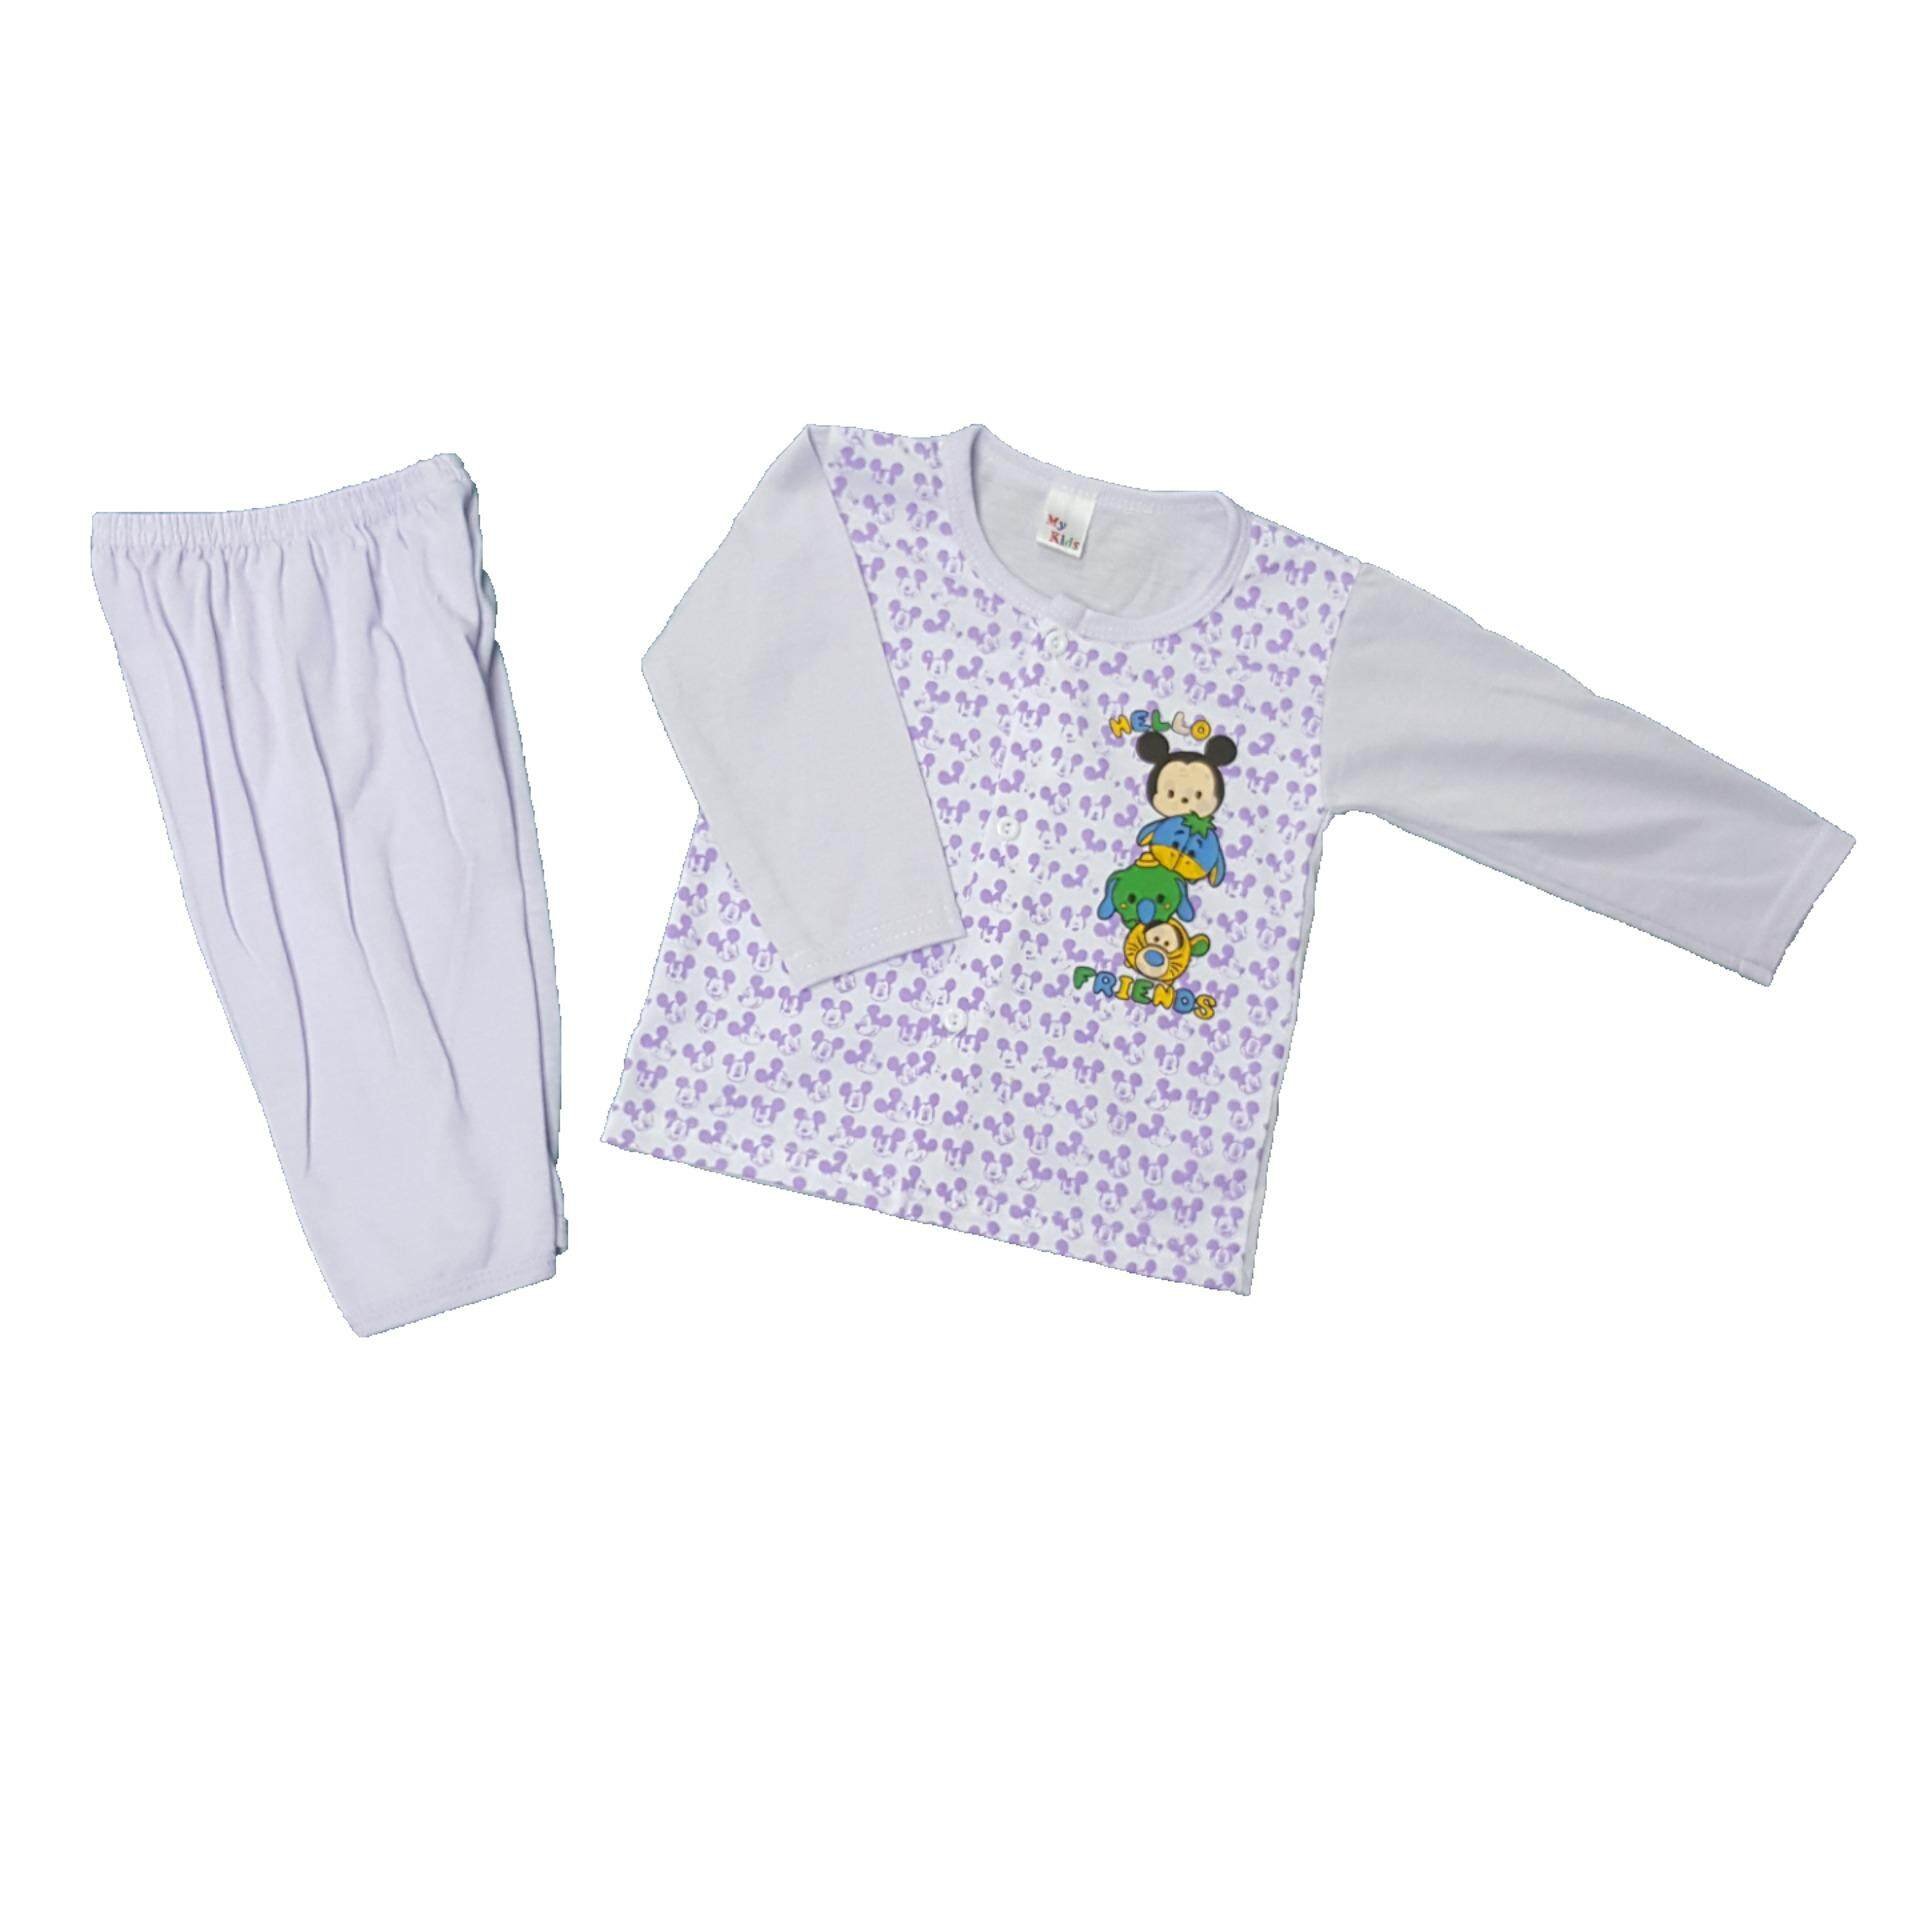 NewBorn & Baby 3 SET Pajamas -001 (Fit to Age: 6-18Mth Mass:8-12kg Height:69-80CM)